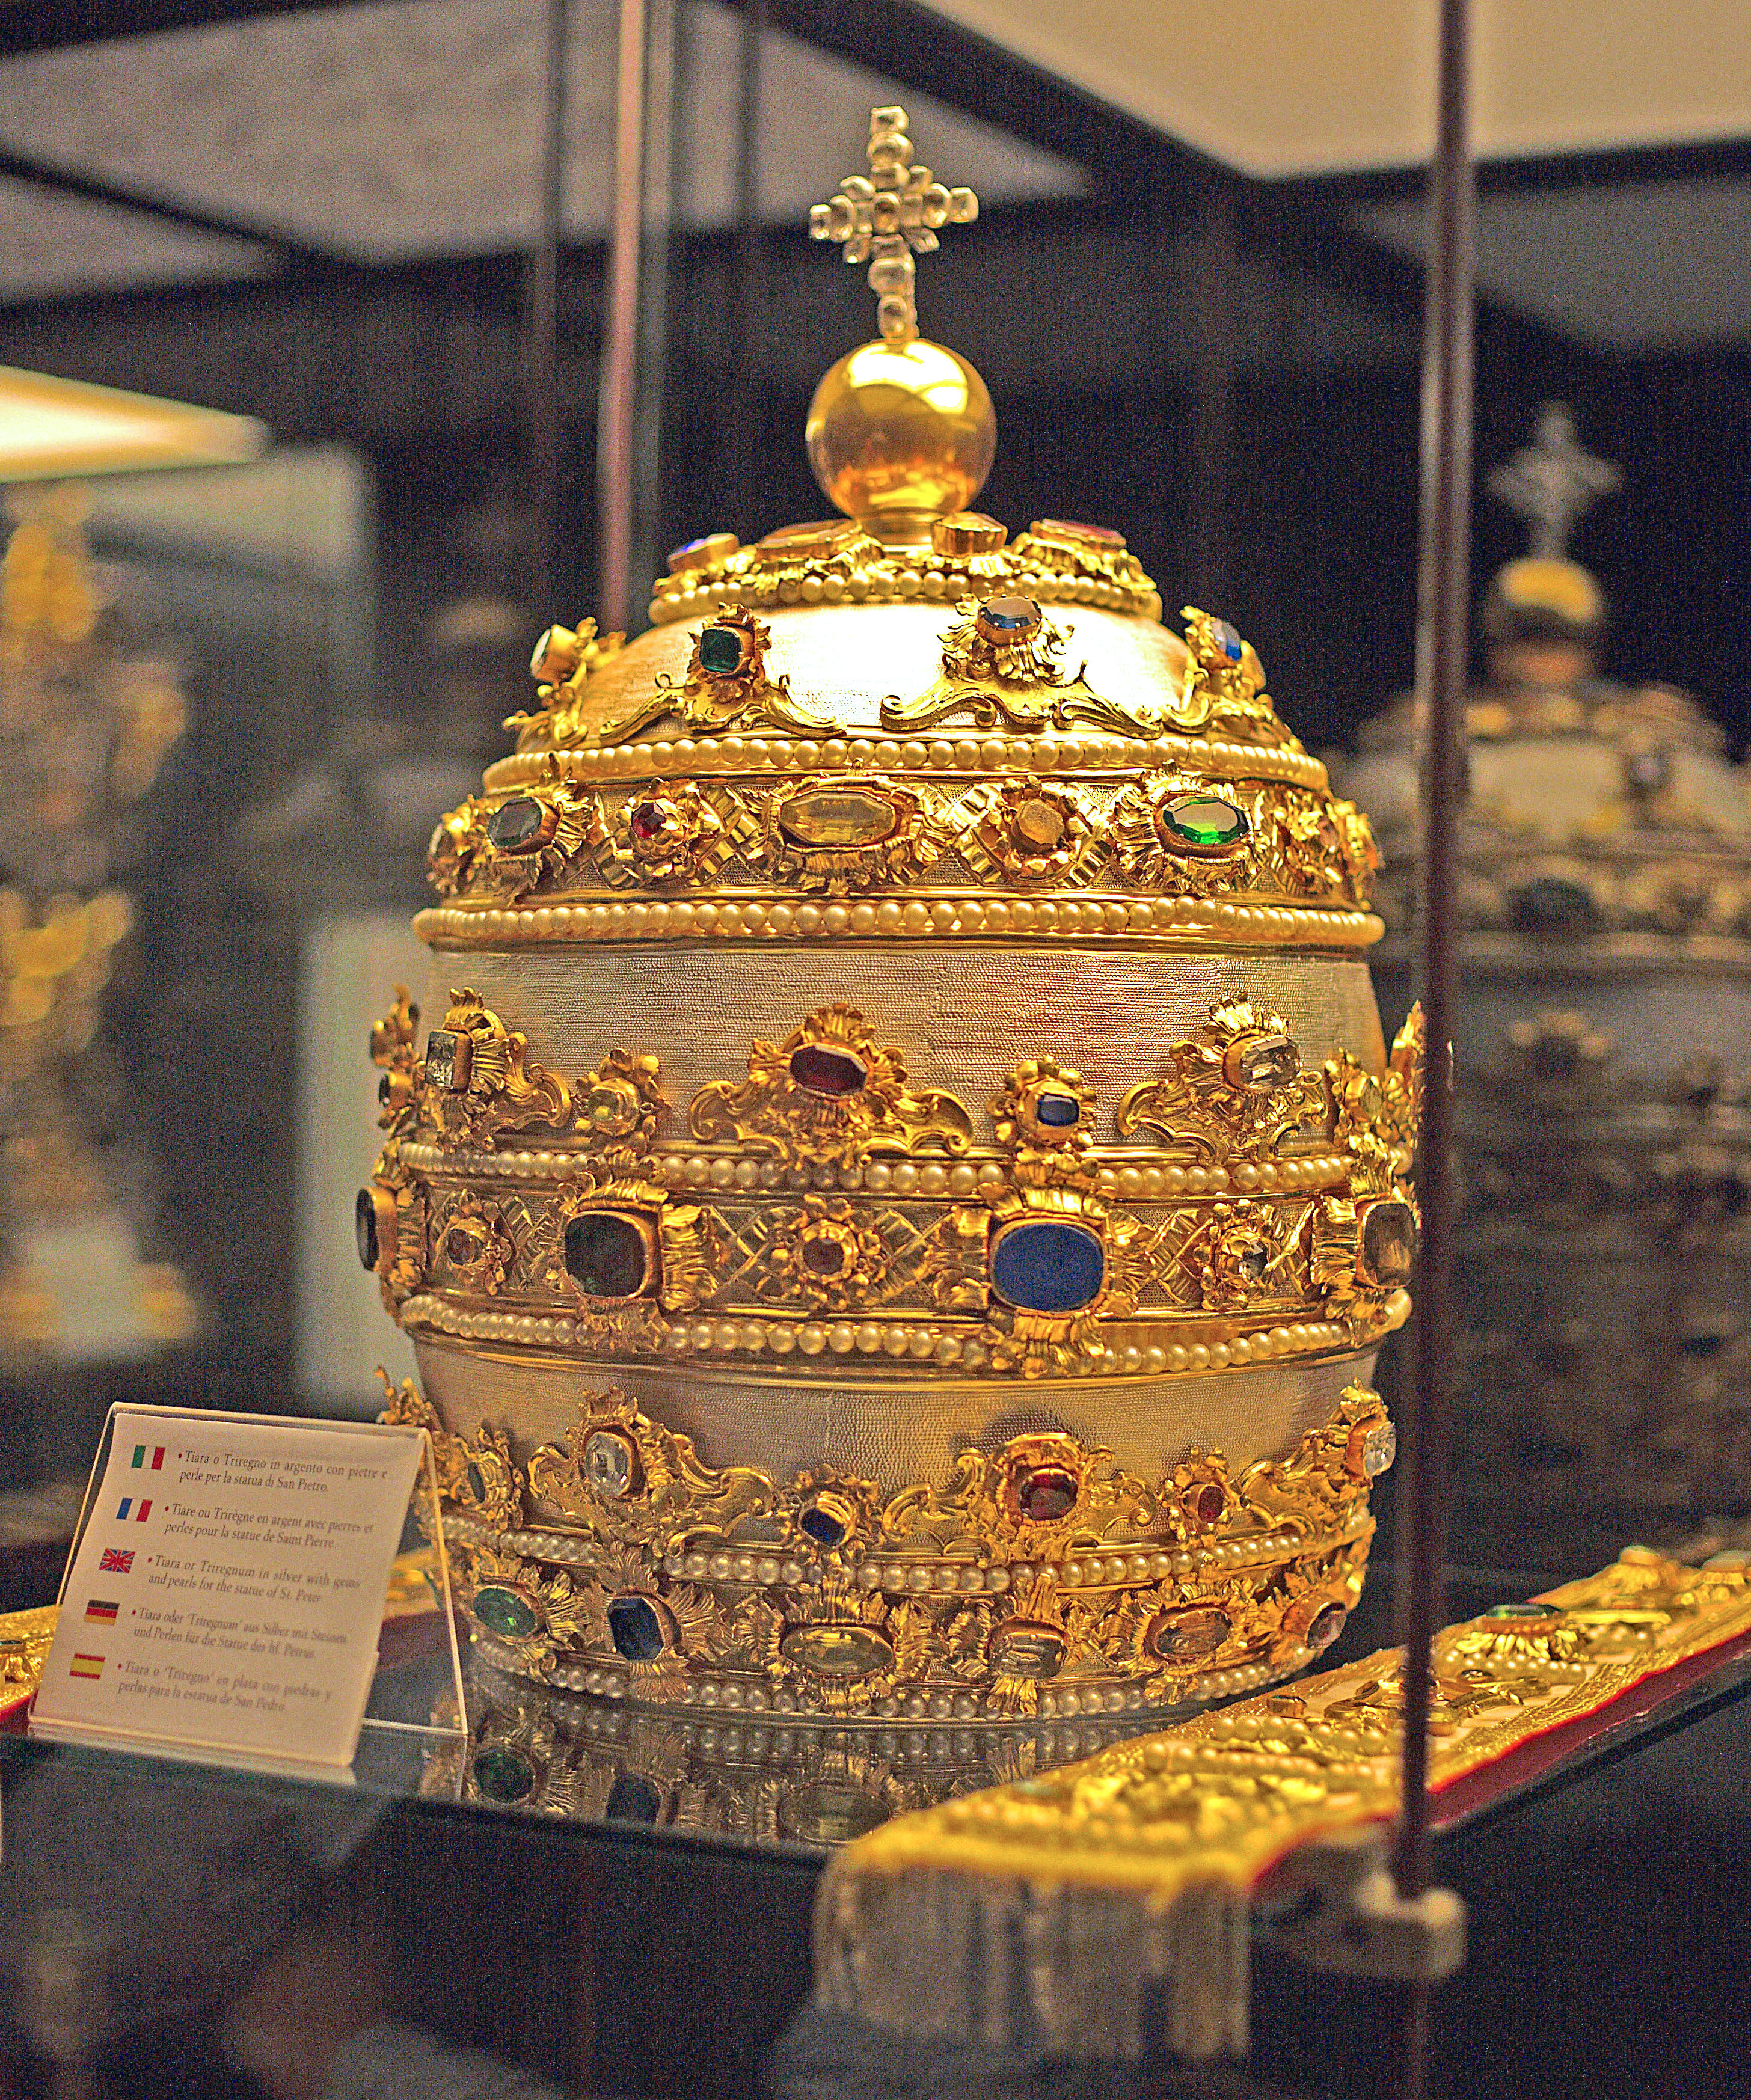 http://upload.wikimedia.org/wikipedia/commons/b/b1/Papal_Tiara_with_silver_gems_pearls.jpg